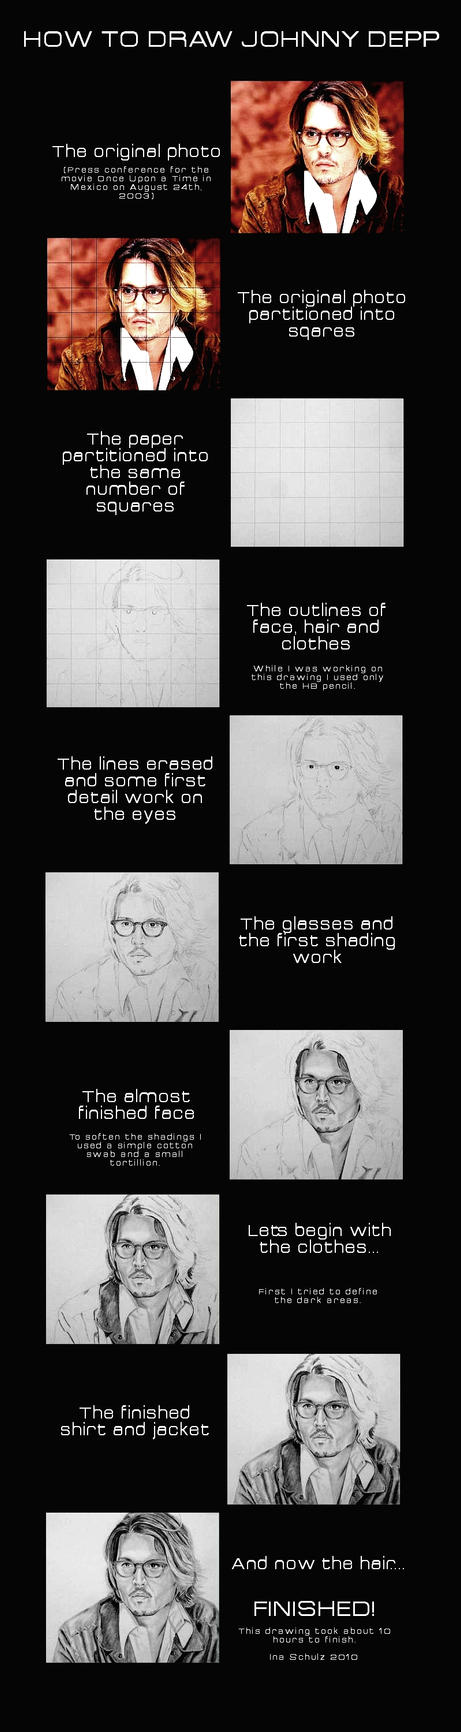 How To Draw Johnny Depp by shaman-art